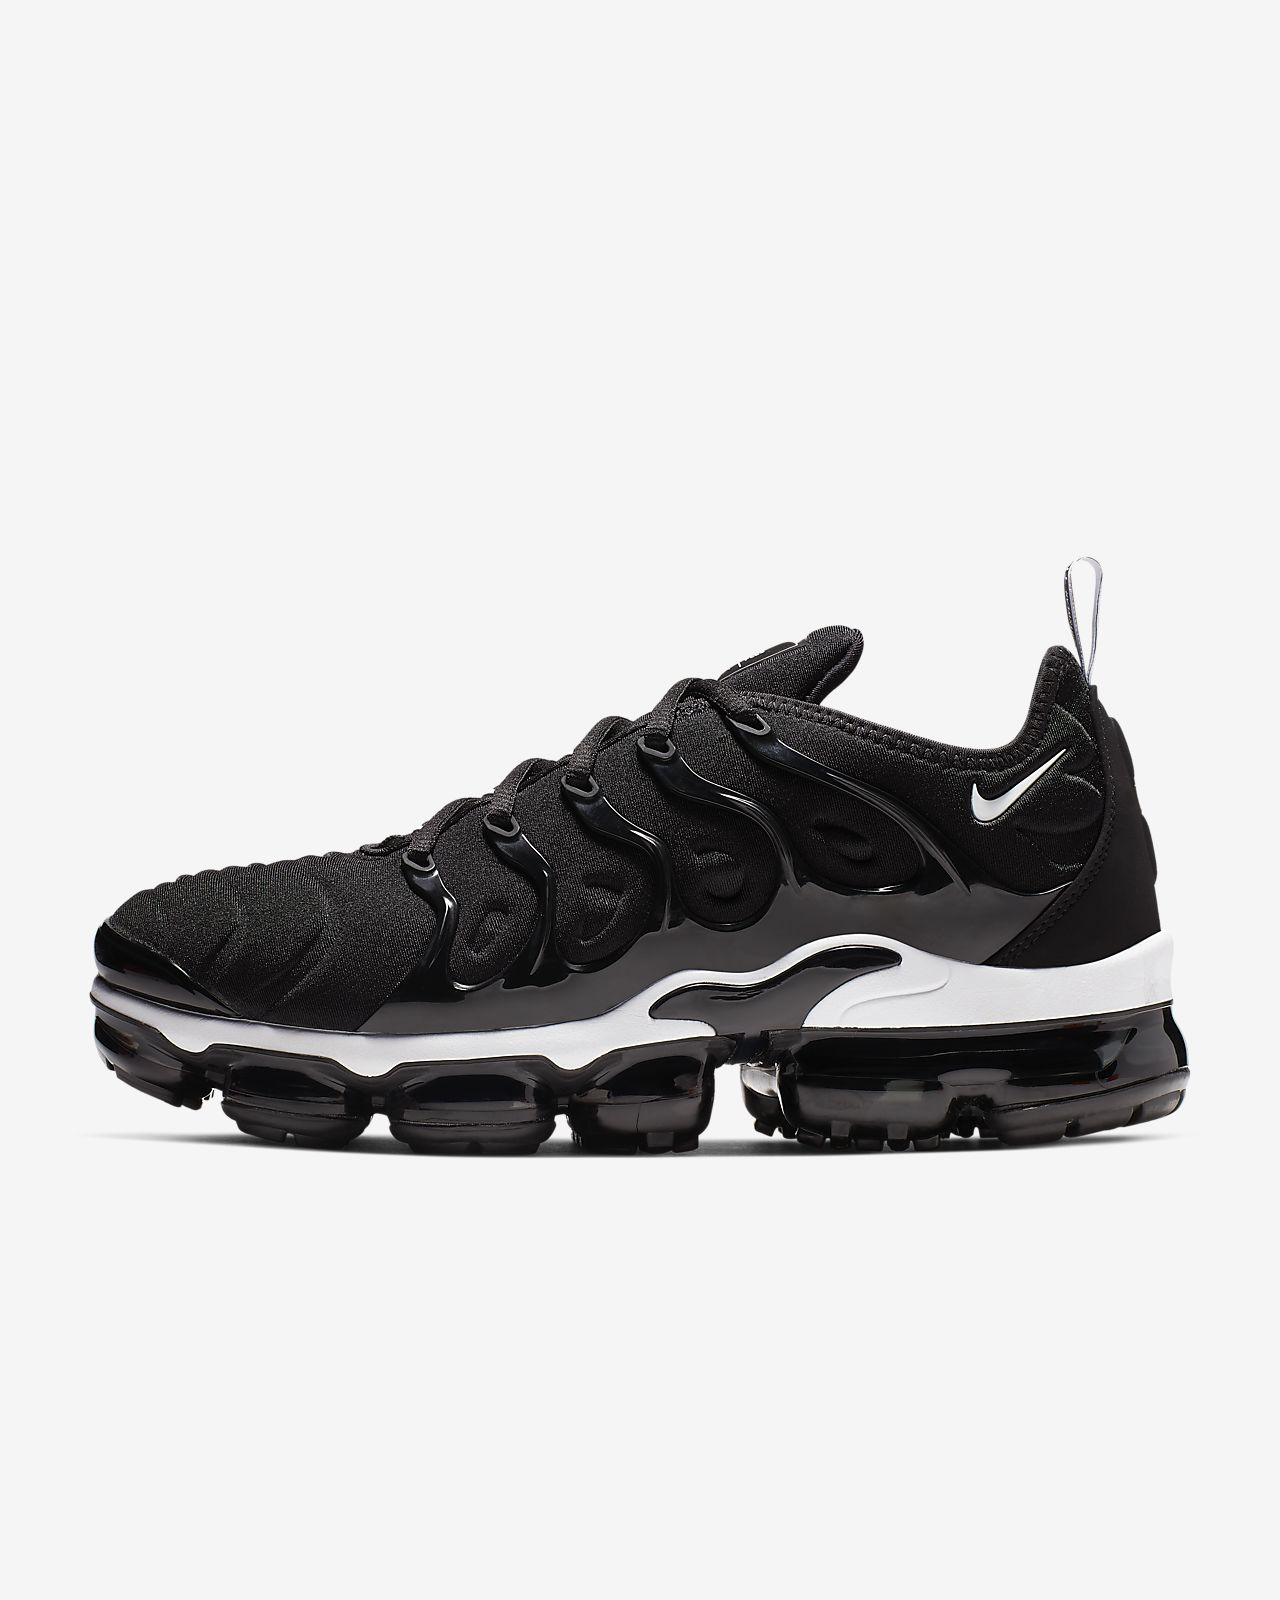 314c3722e8d4e Nike Air VaporMax Plus Men s Shoe. Nike.com CA